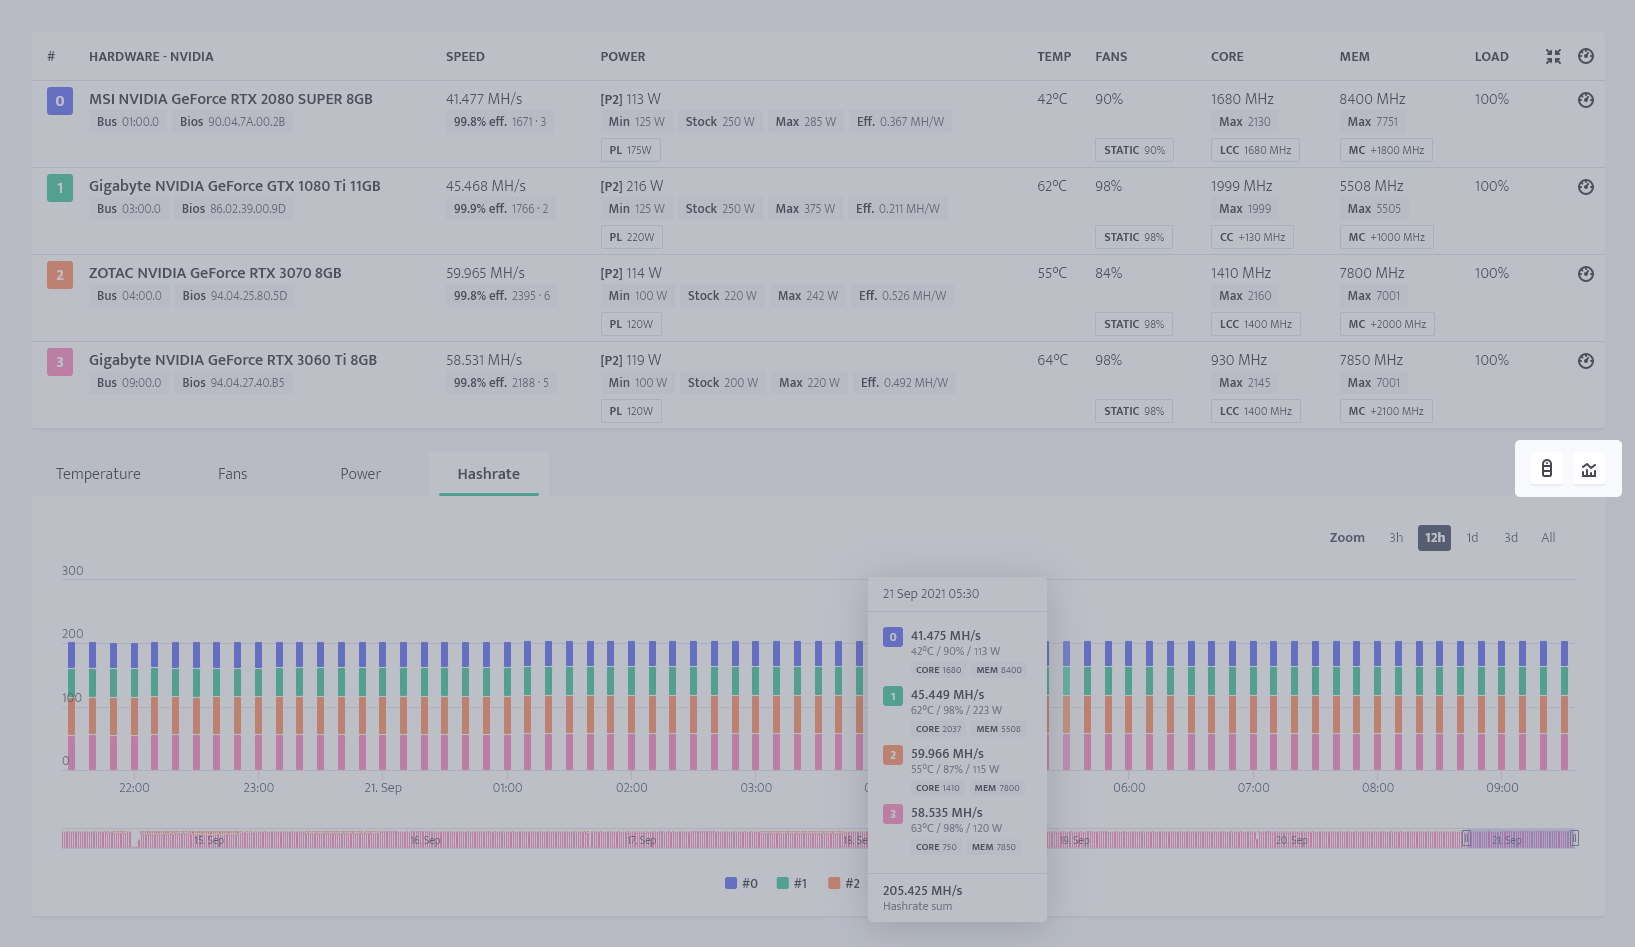 minerstat - Worker's profile - Hardware charts actions